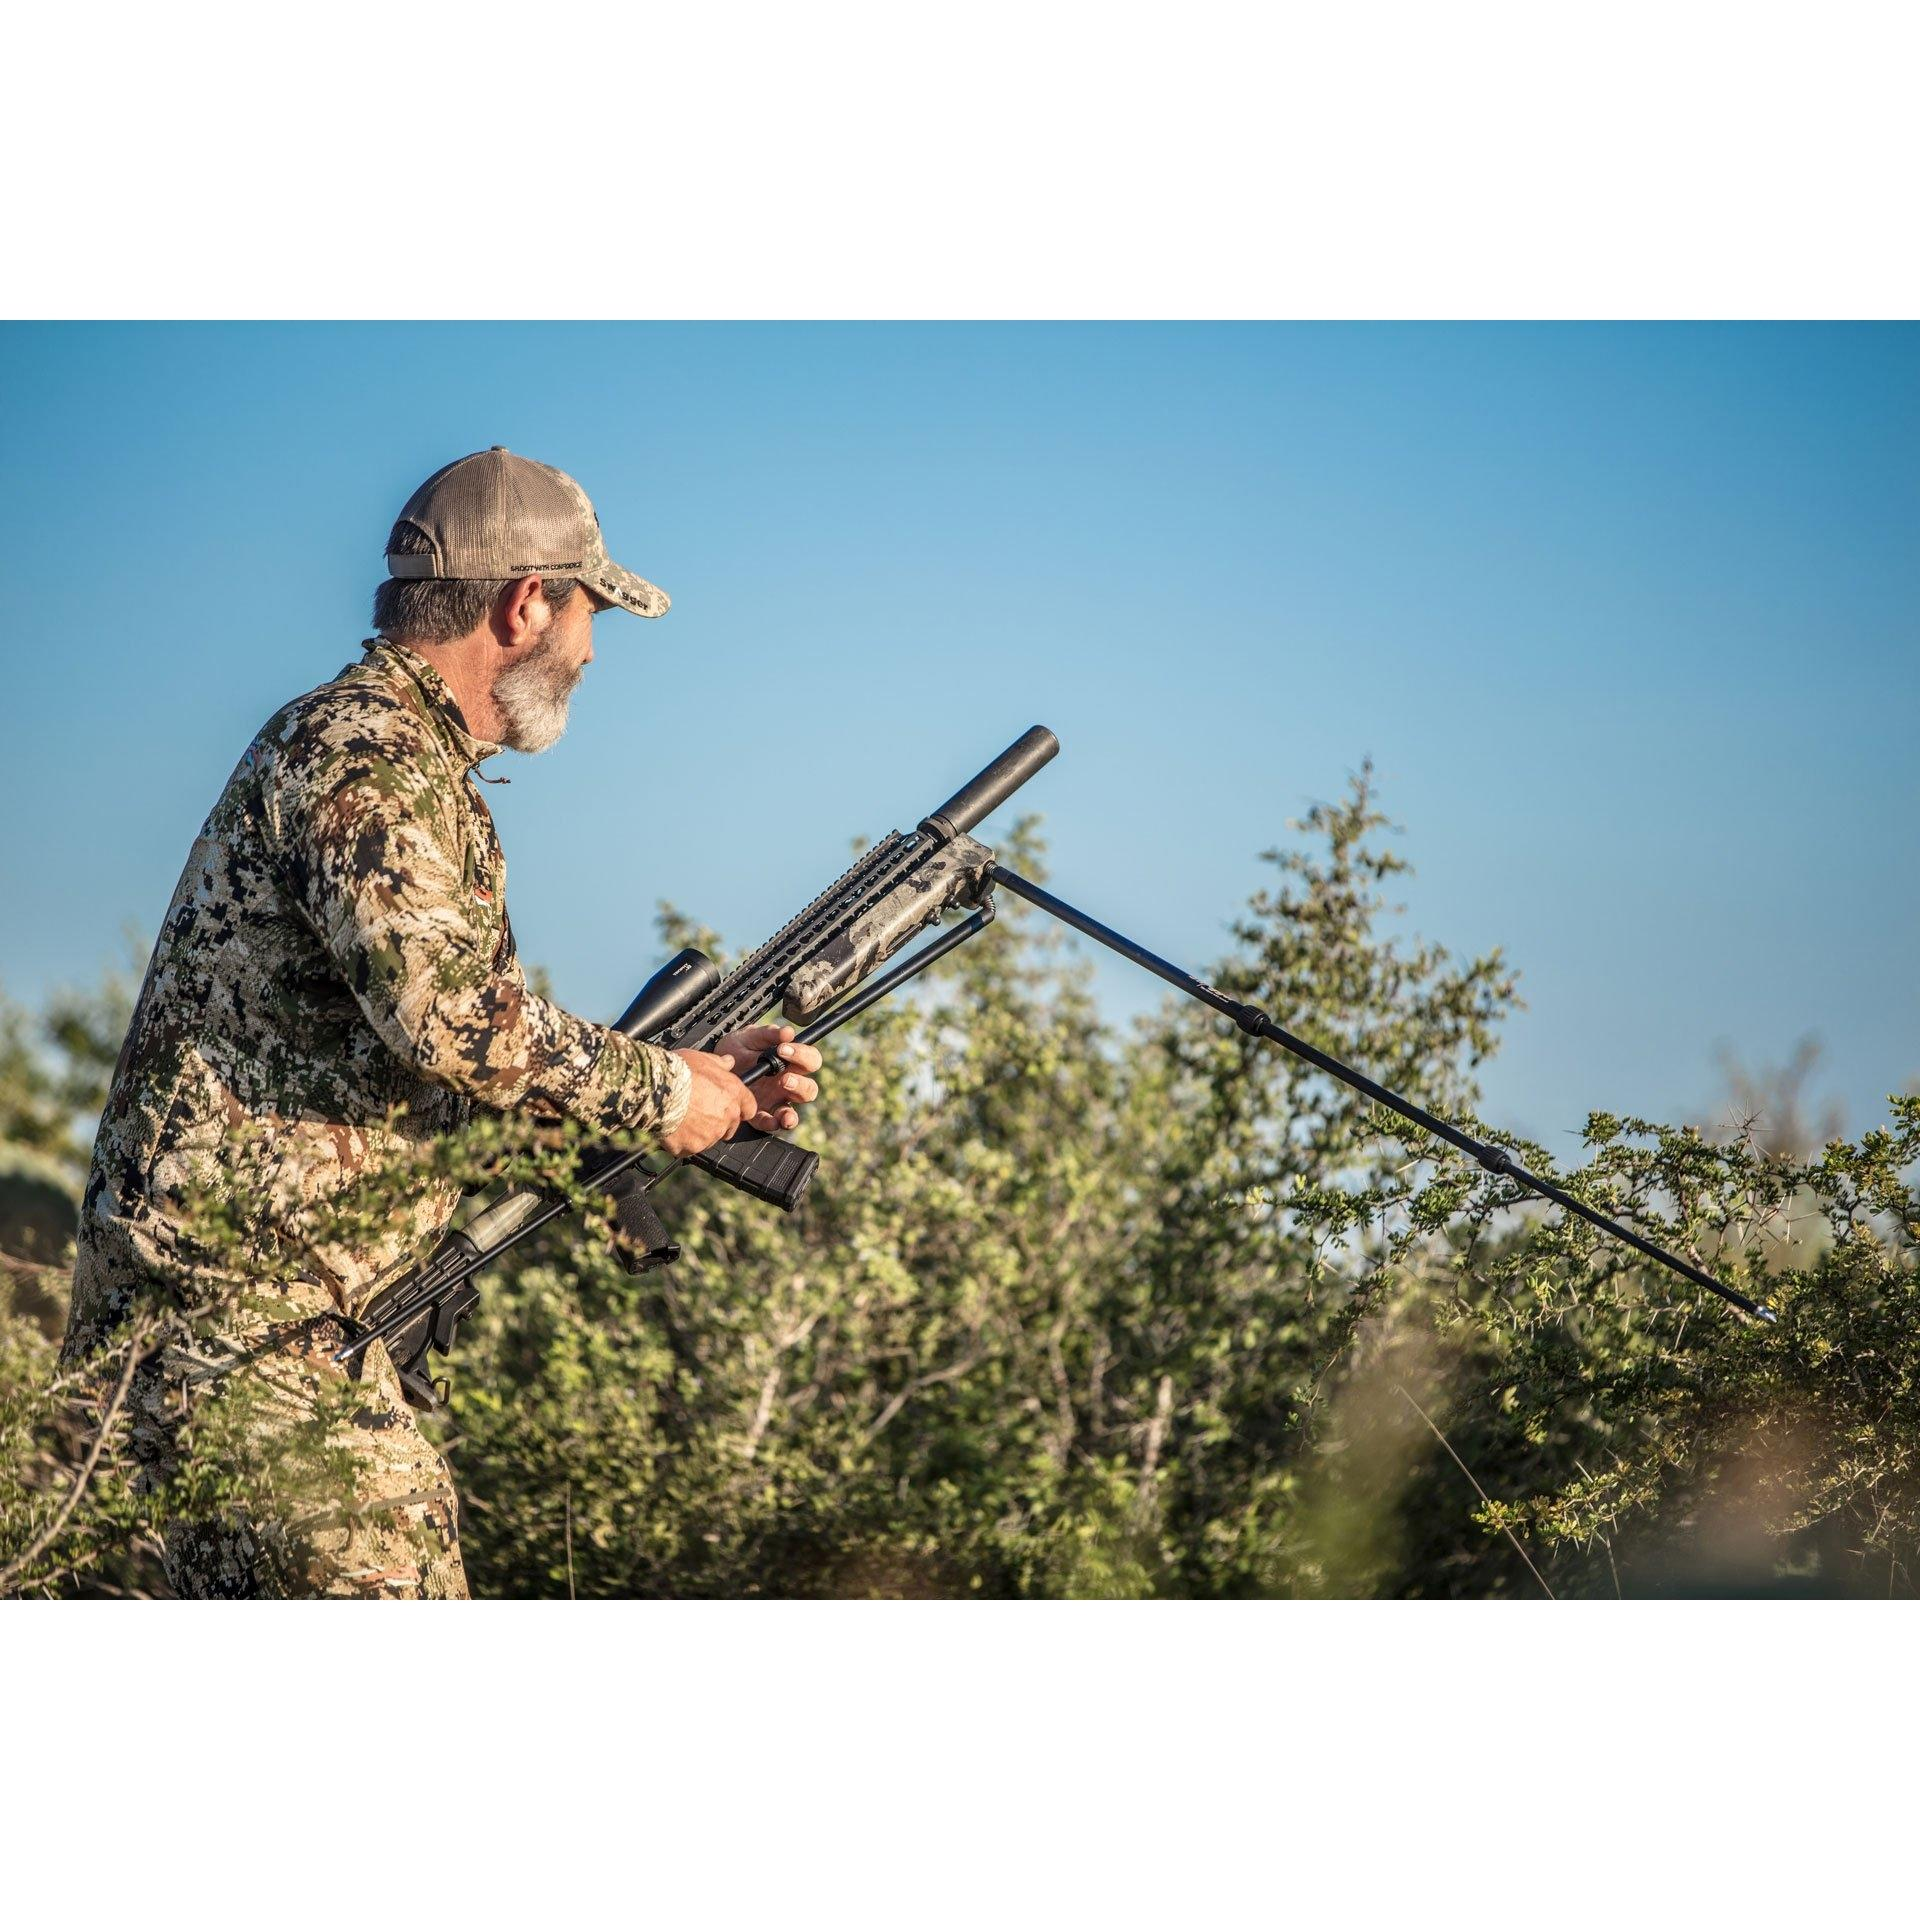 Veil Camo Hunter Series Bipod